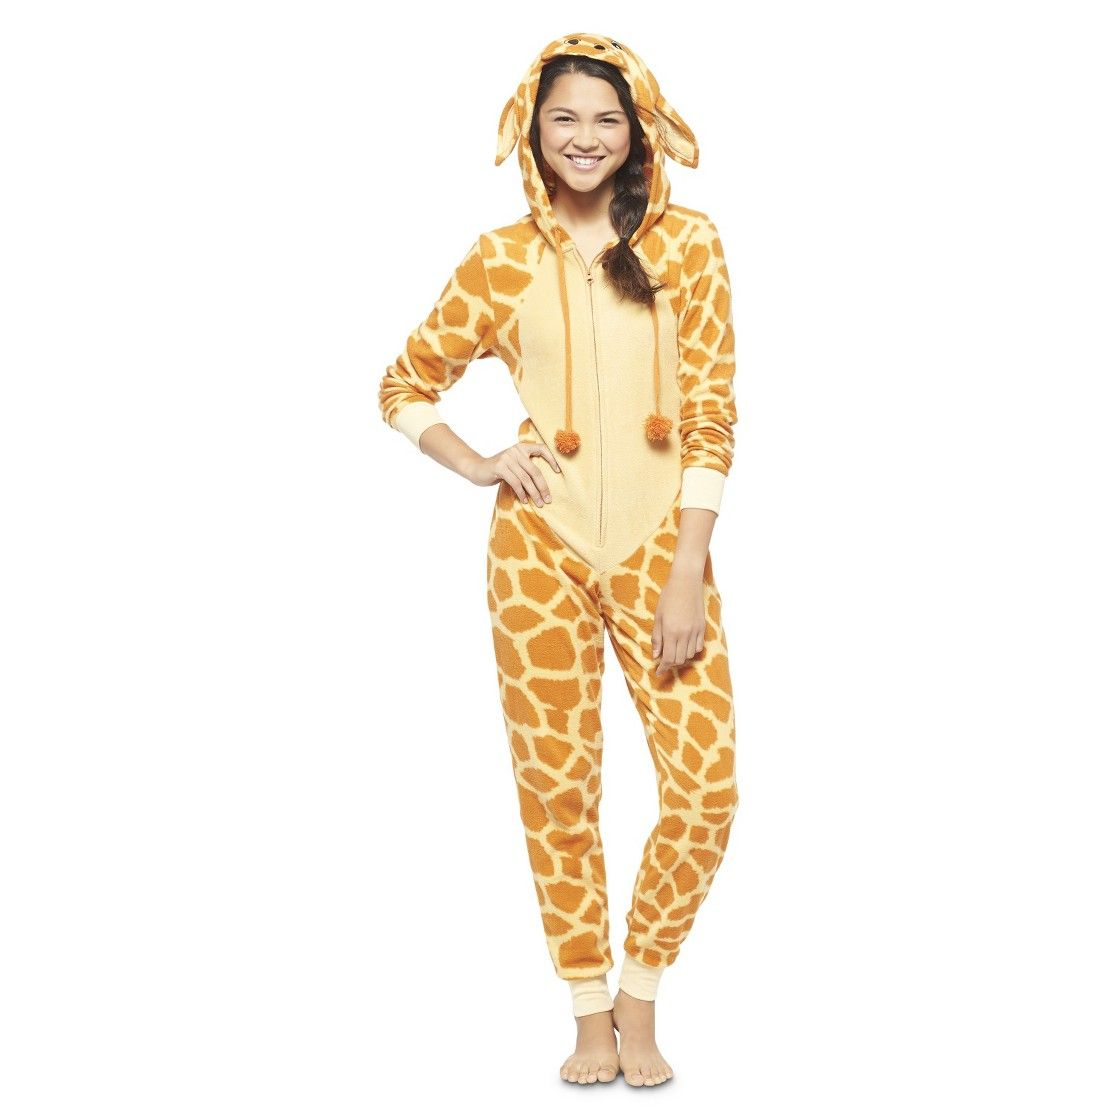 26ac5abfc409 Women s Giraffe Footie PJ Yellow. Haha me and my friend were just talking  about these!!